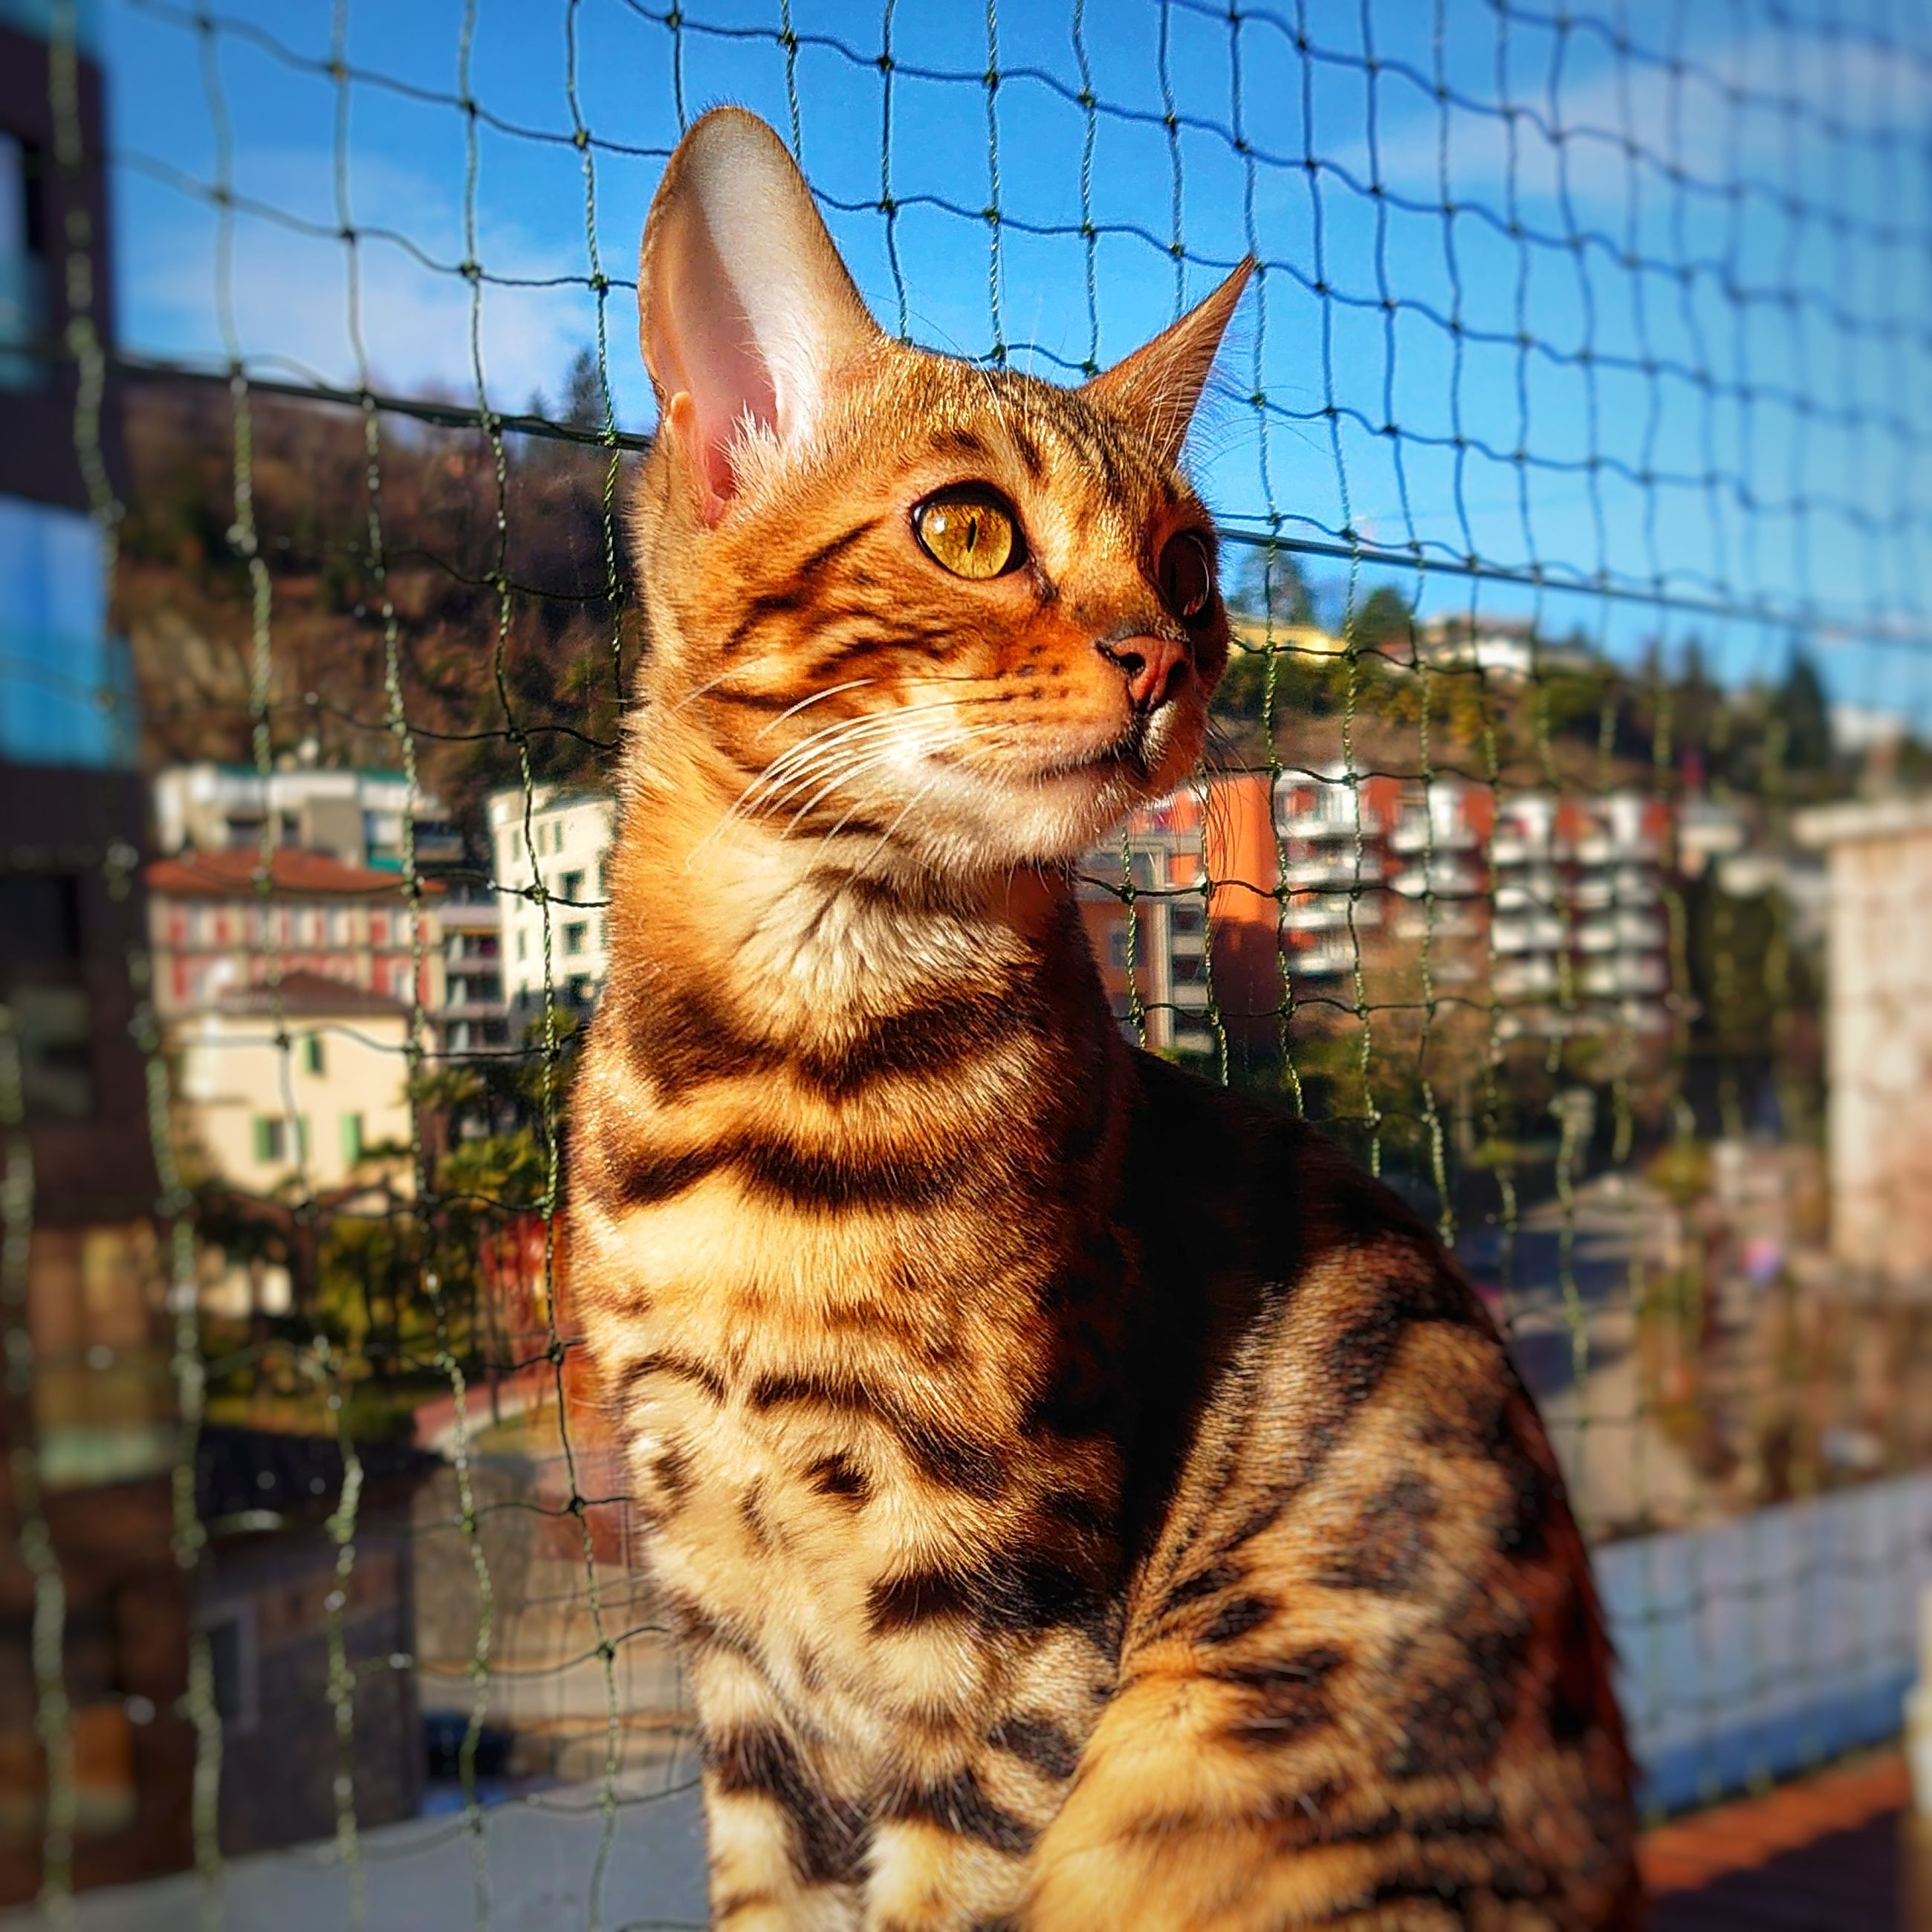 cat, animal, pet, animal themes, mammal, one animal, feline, domestic animals, domestic cat, tabby cat, whiskers, small to medium-sized cats, felidae, no people, looking, carnivore, day, fence, focus on foreground, looking away, close-up, nature, portrait